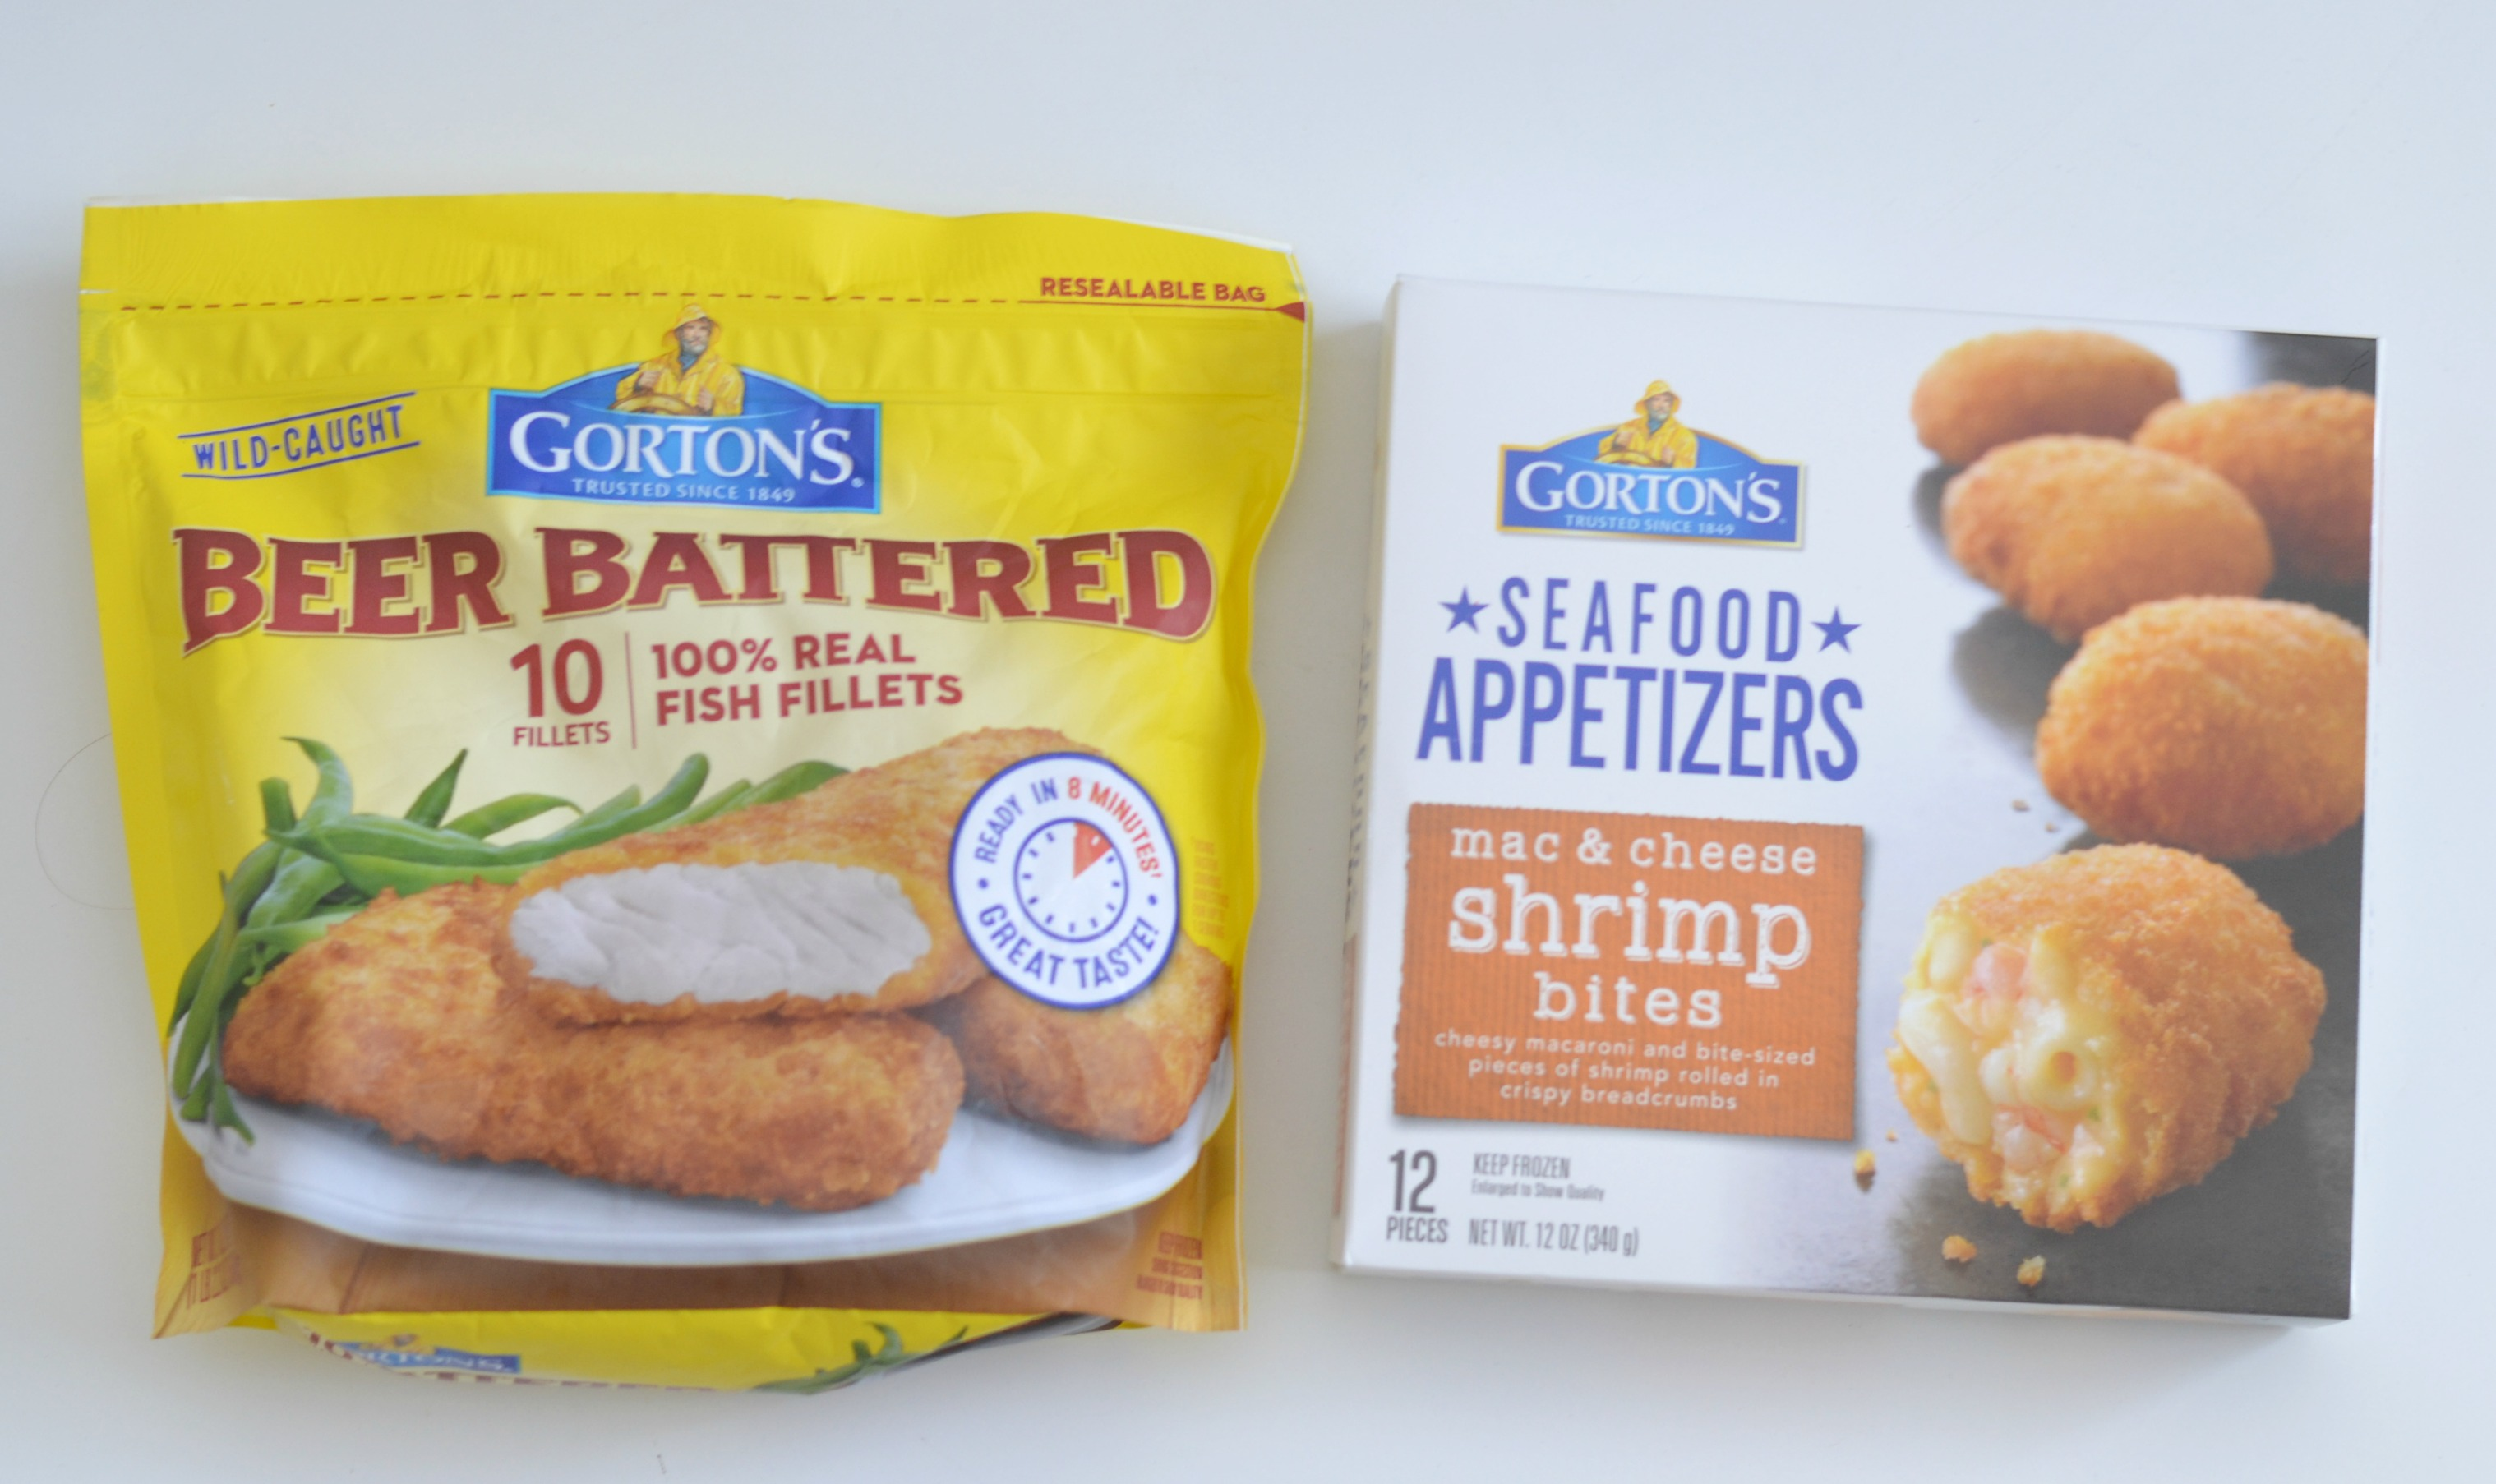 Shrimp Appetizer ideas, Gorton's Seafood Appetizers - Mac n Cheese Shrimp Bites, Easy Fish Parmesan Casserole, lent options for dinner